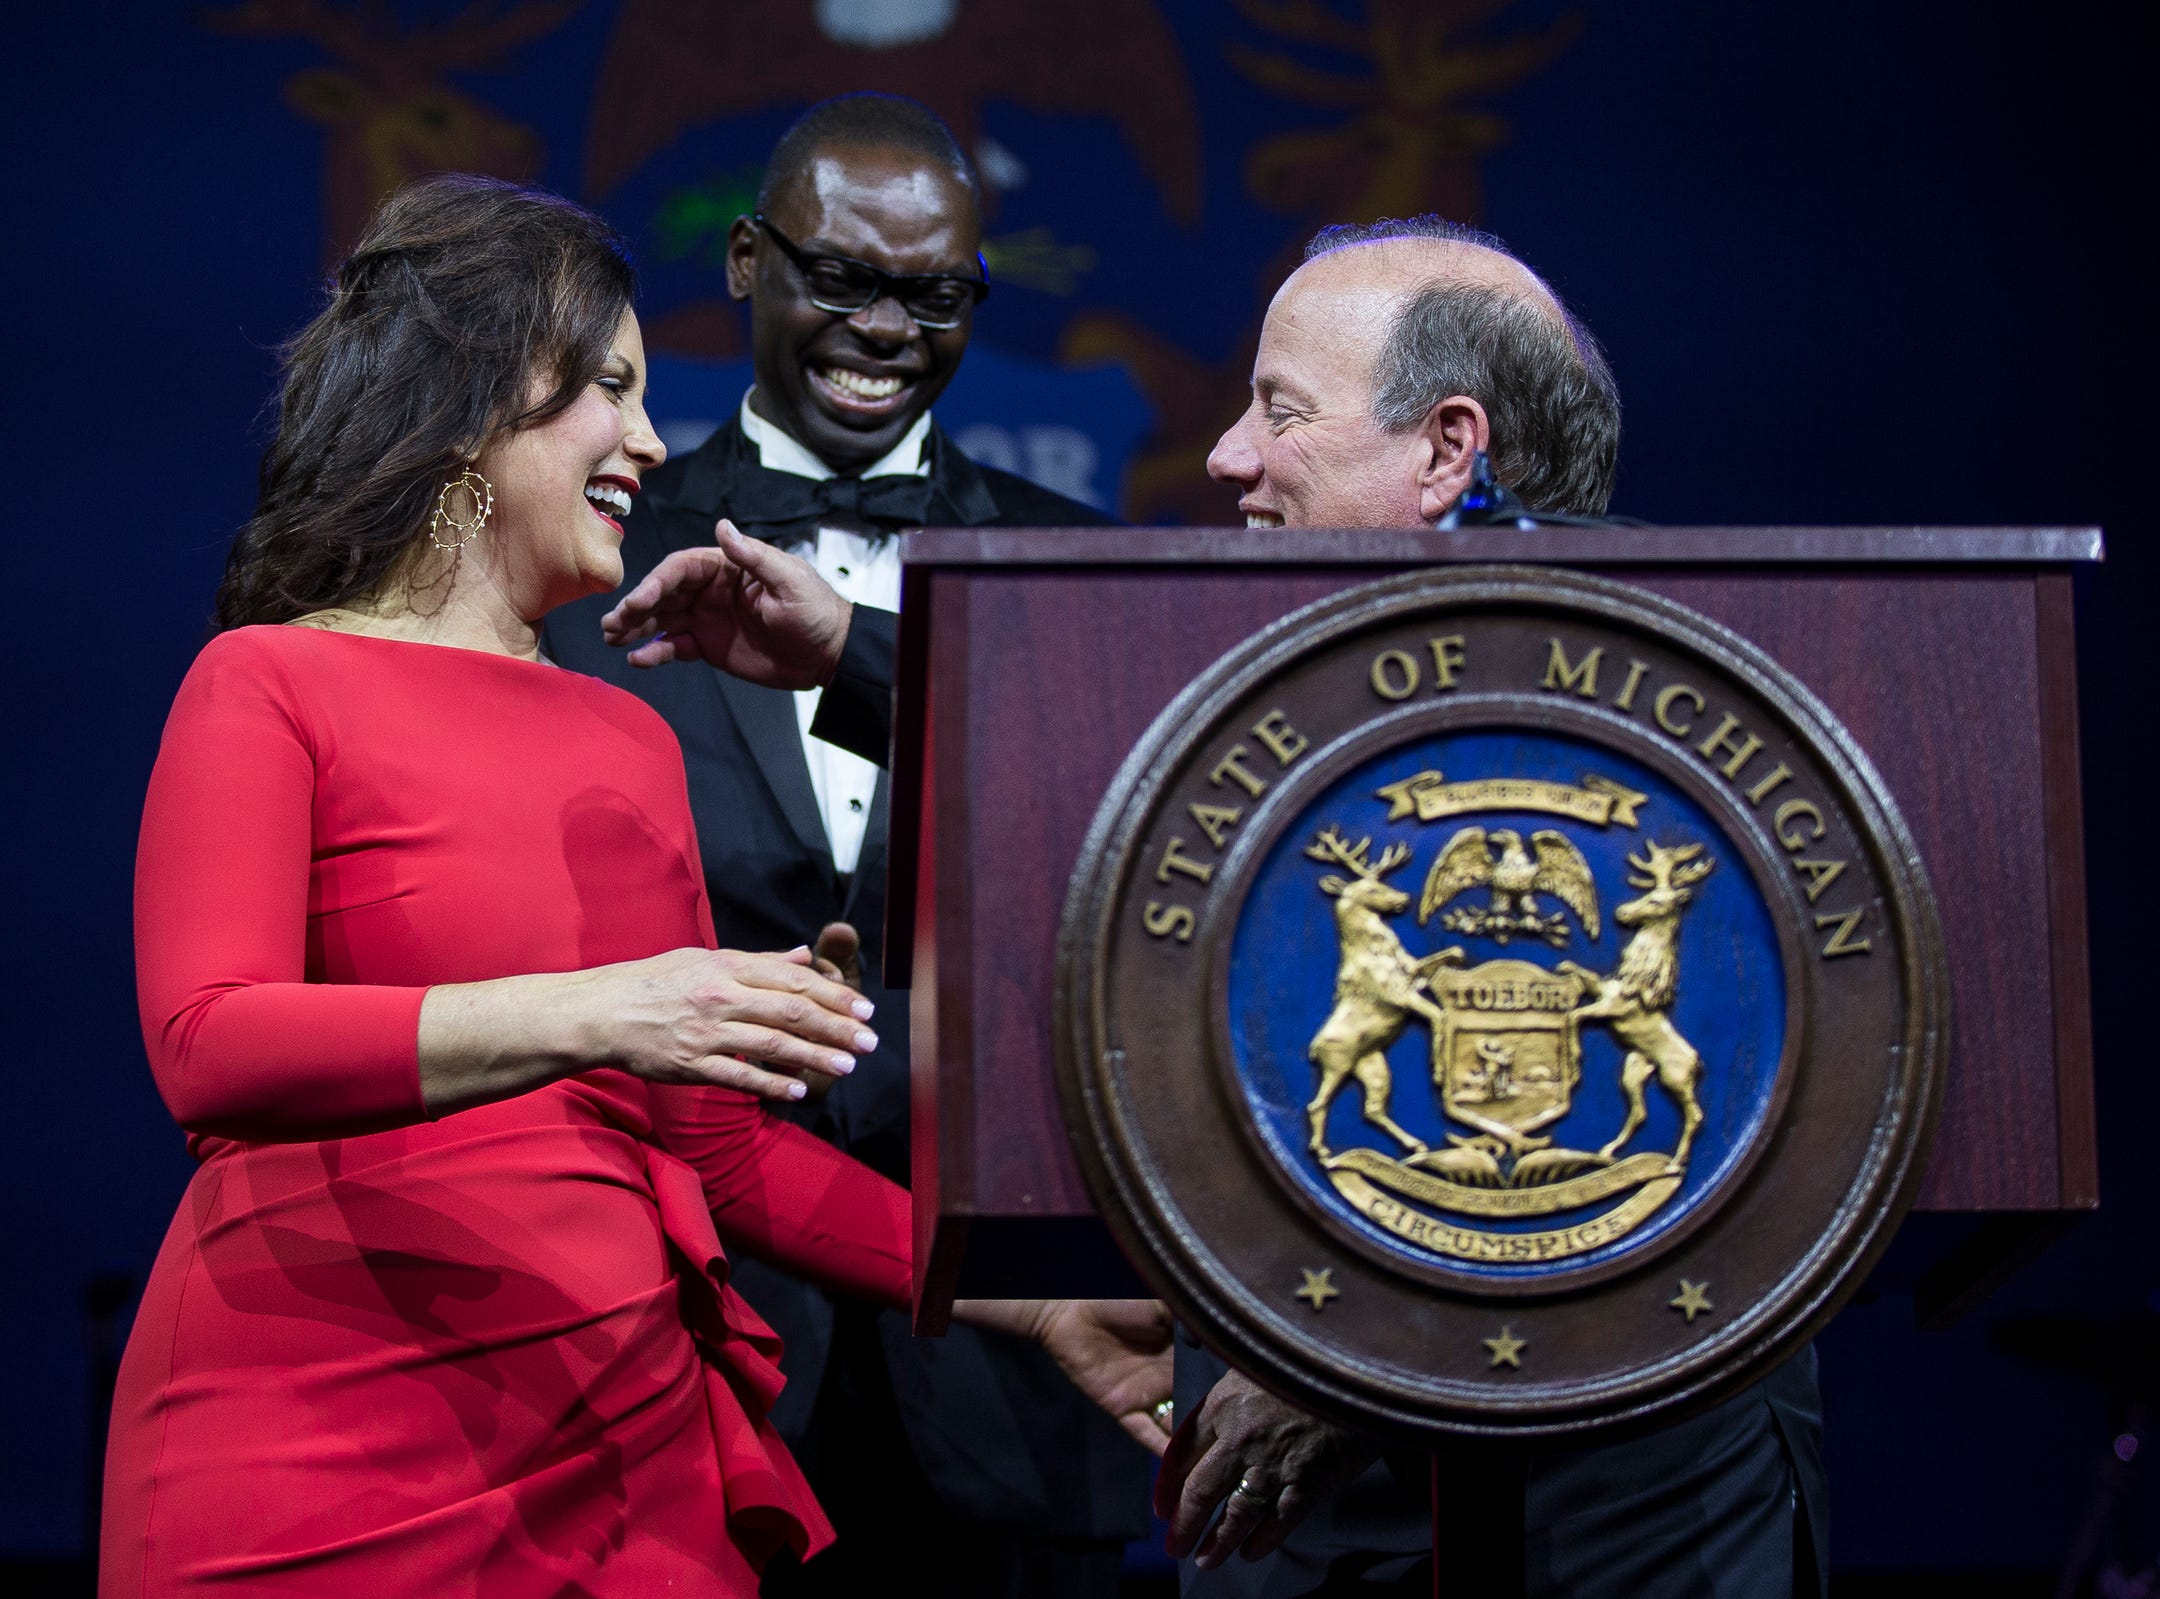 Governor Gretchen Whitmer hugs Detroit mayor Mike Duggan during the inaugural ball at Cobo Center in Detroit on Tuesday, Jan. 1, 2019.